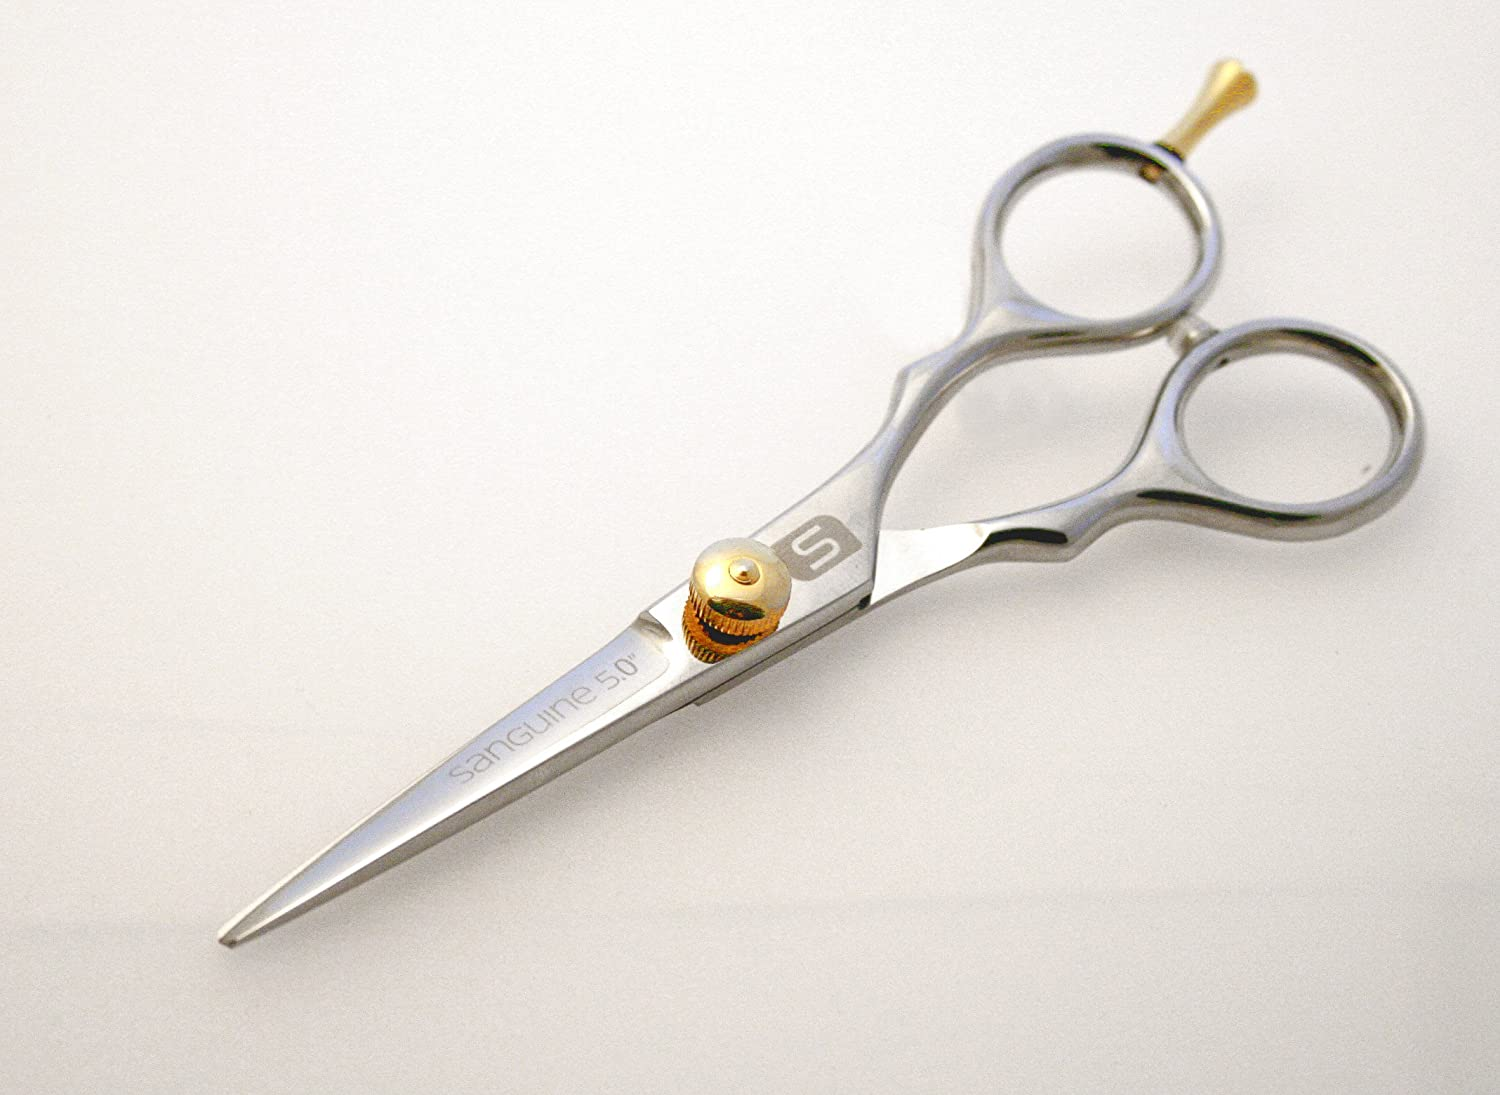 Moustache Grooming Scissors and Beard Trimming Scissors, Extremely Sharp - Silver 5 inch Sanguine Scissors Ltd Must-JAG-50Silver